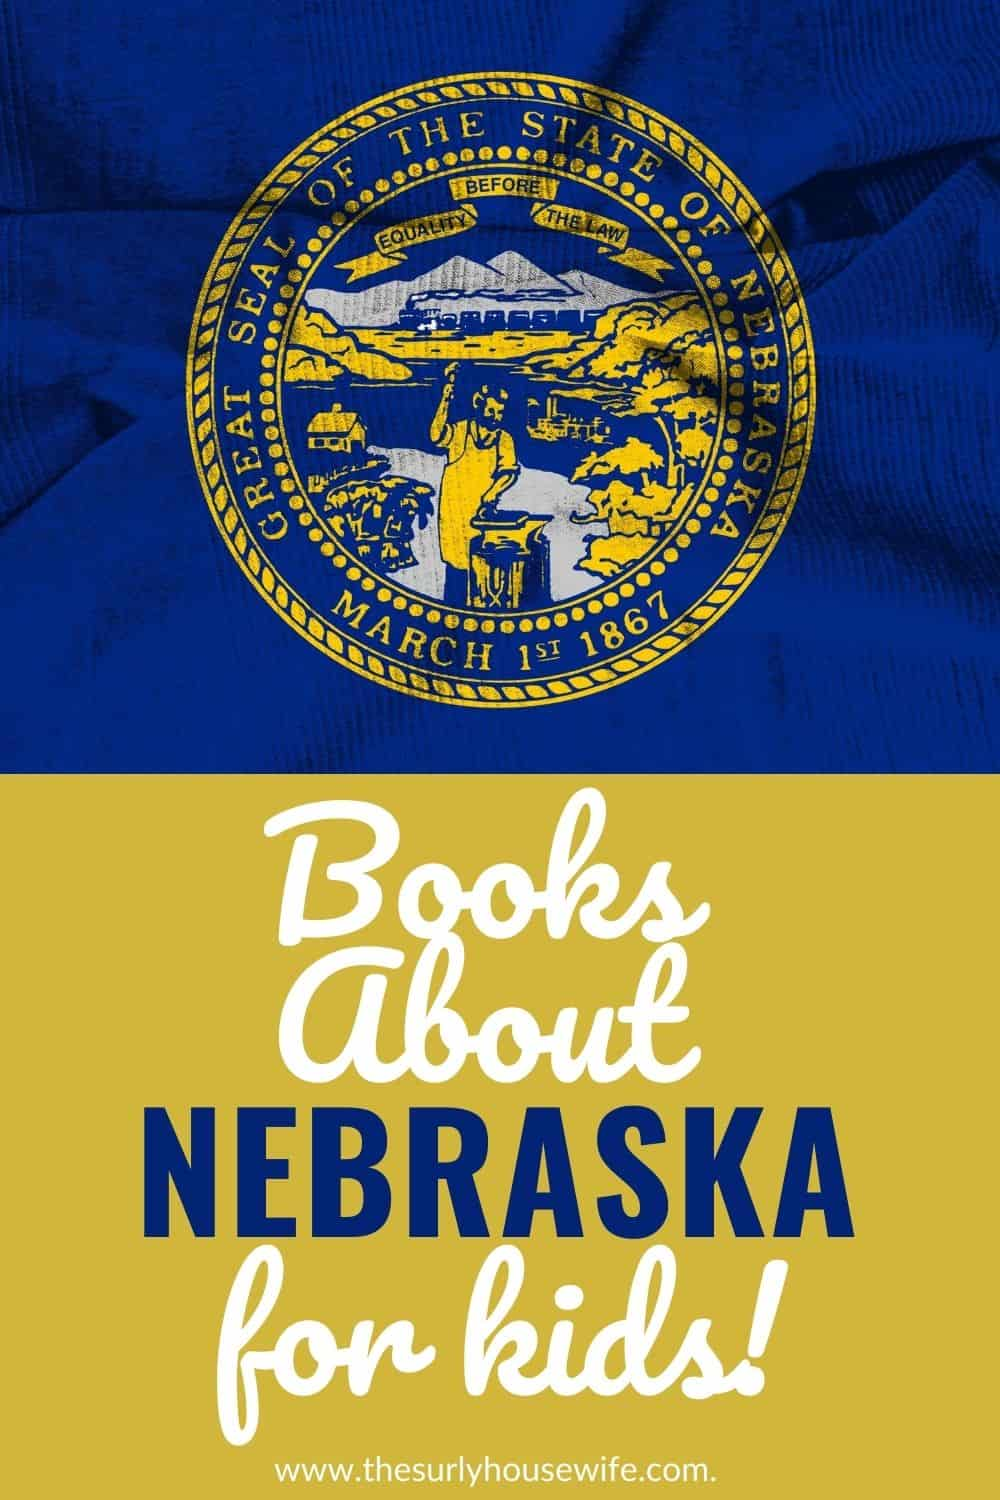 Searching for books about Nebraska, then check out this post! It contains children's books, chapter books, and picture books about and set in Nebraska!